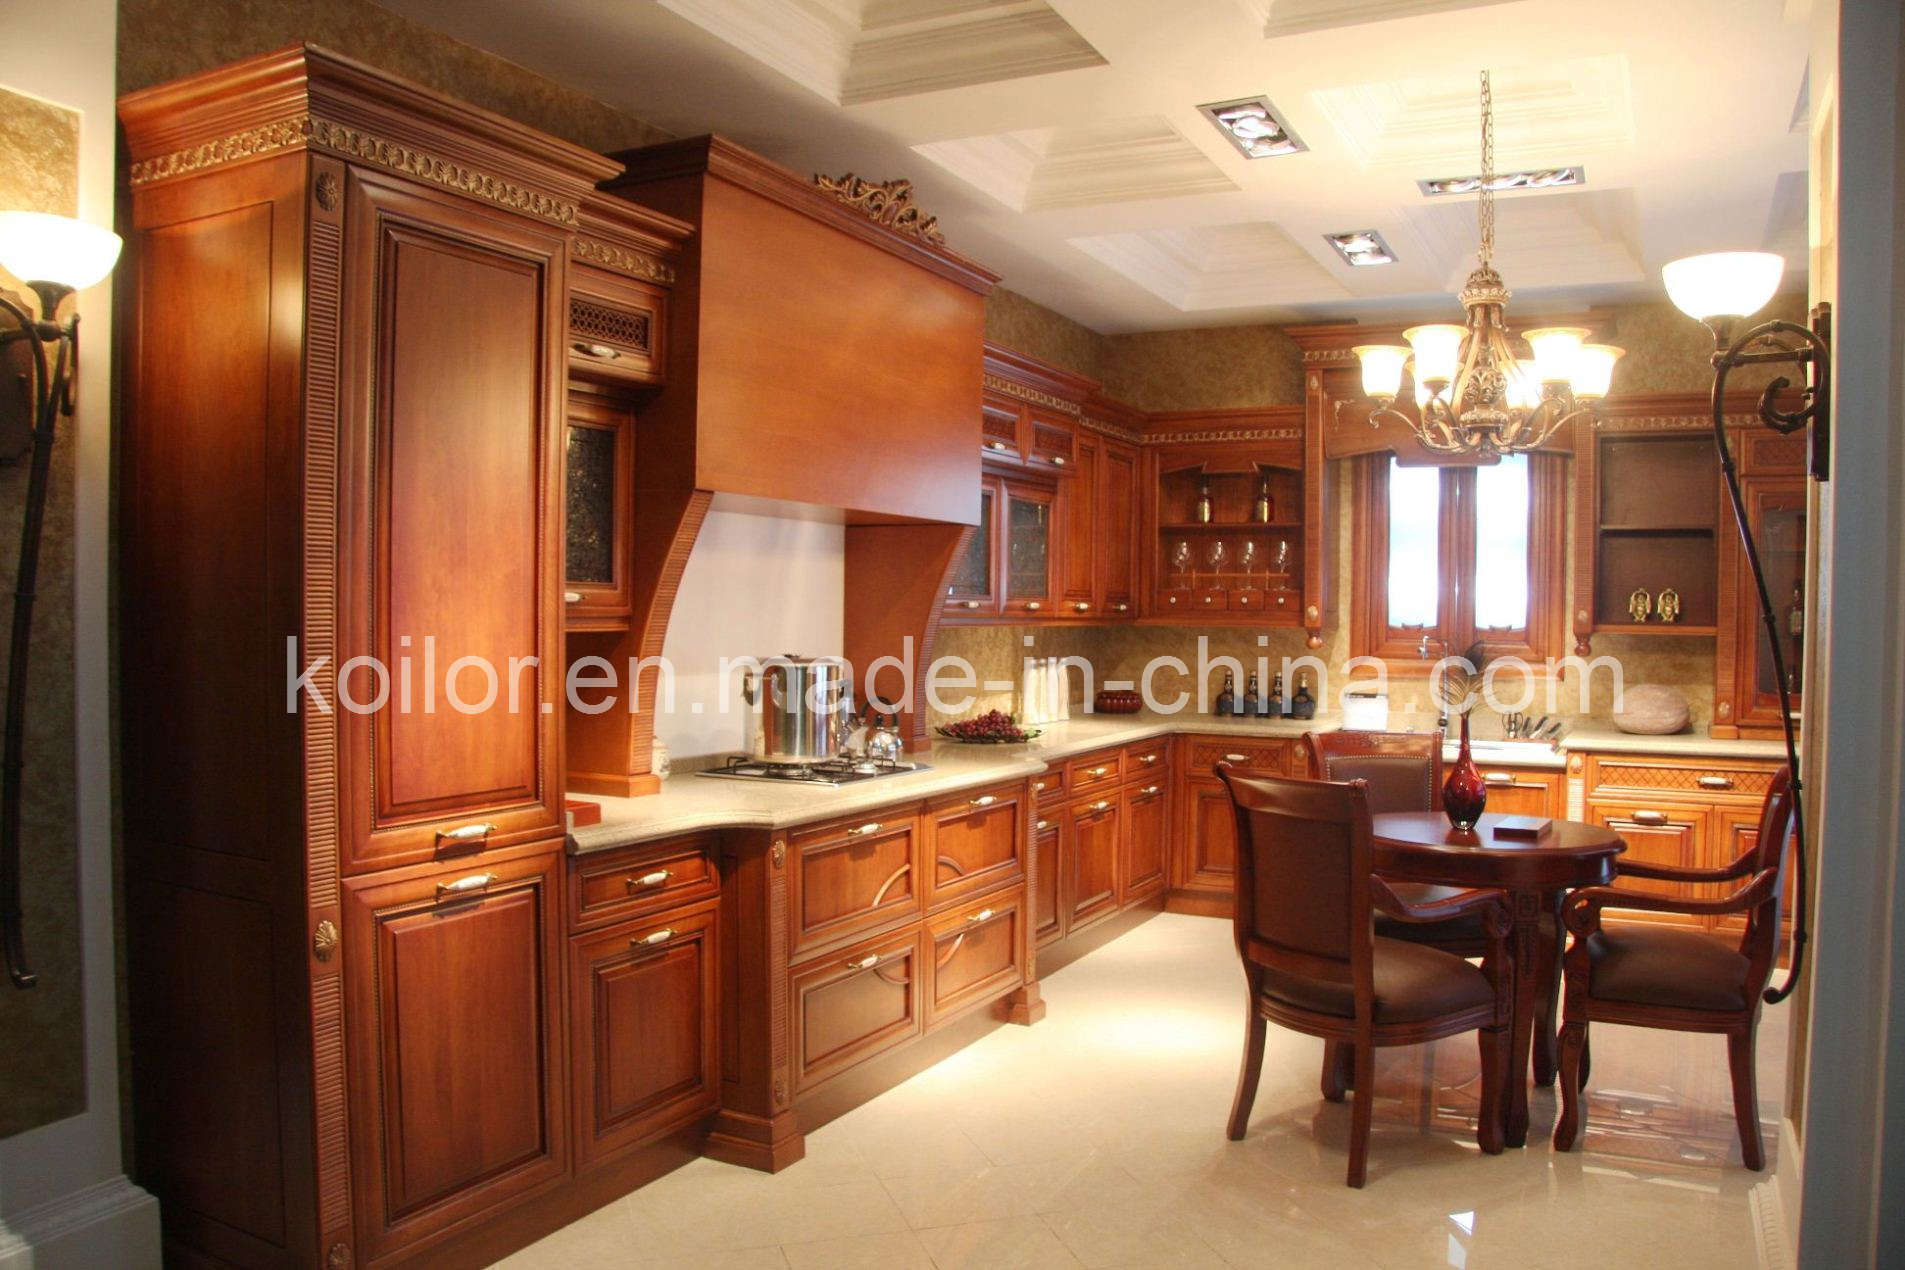 China Kitchen Cabinet Solid Wood Kitchen Cabinets Royal China